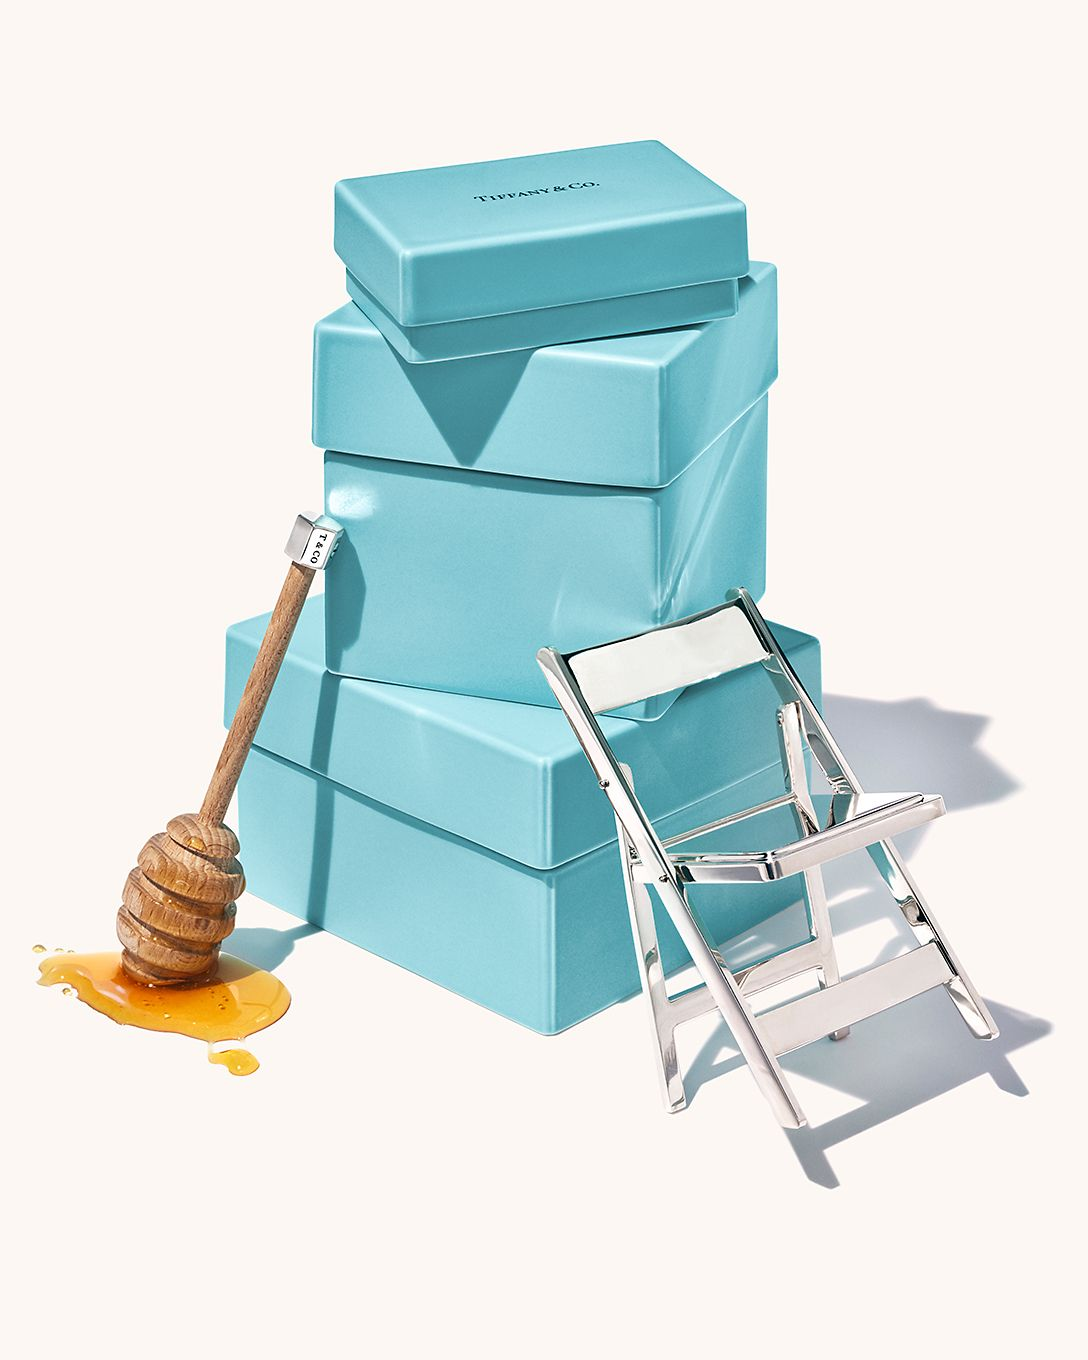 Shop Tiffany & Co. Everyday Objects Collection